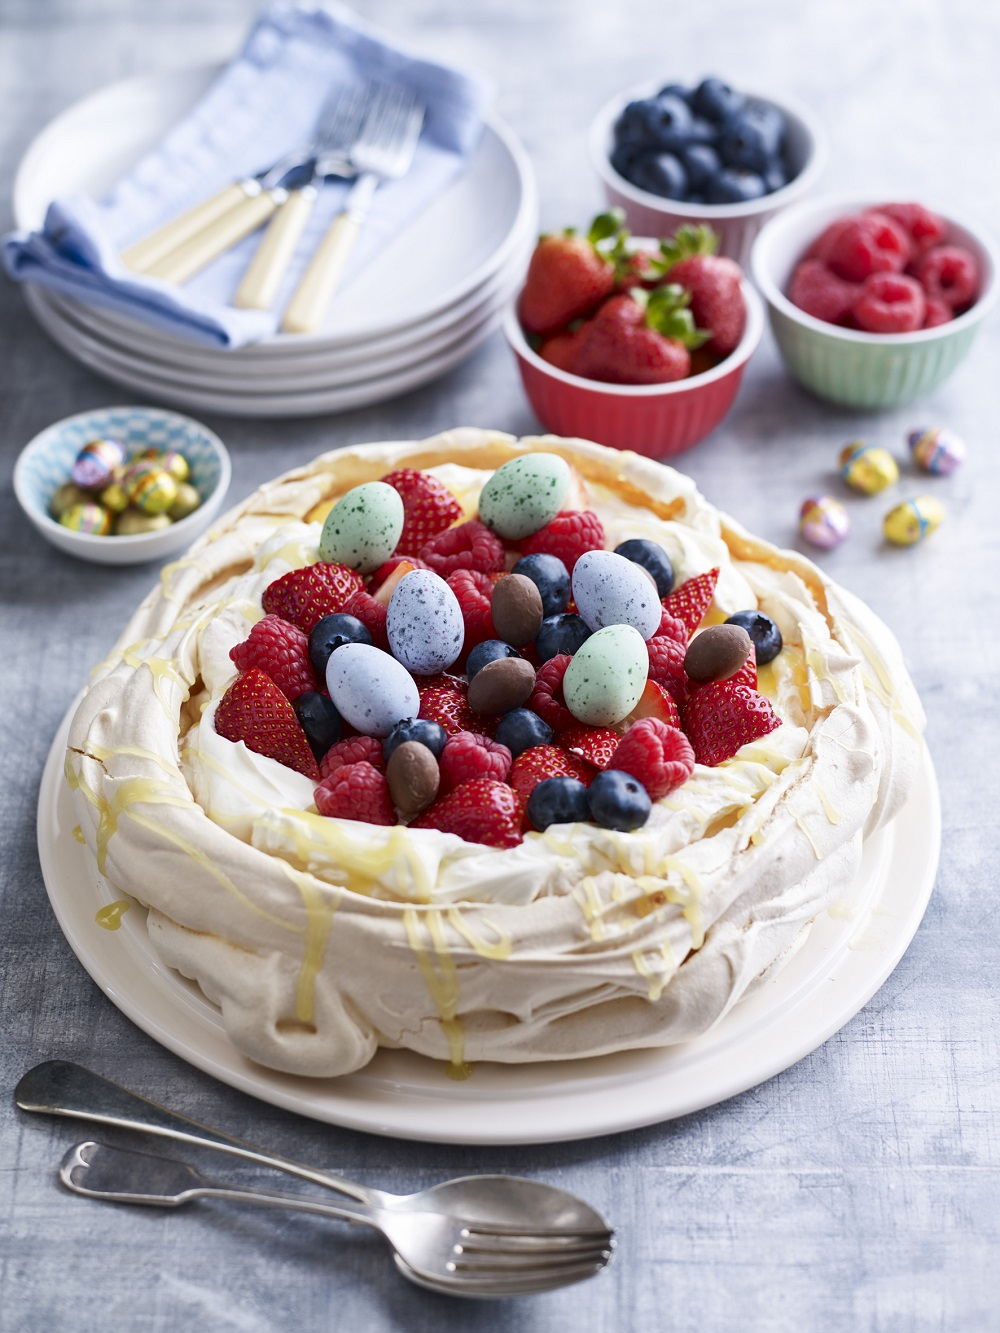 Mixed Berry Pavlova For Easter